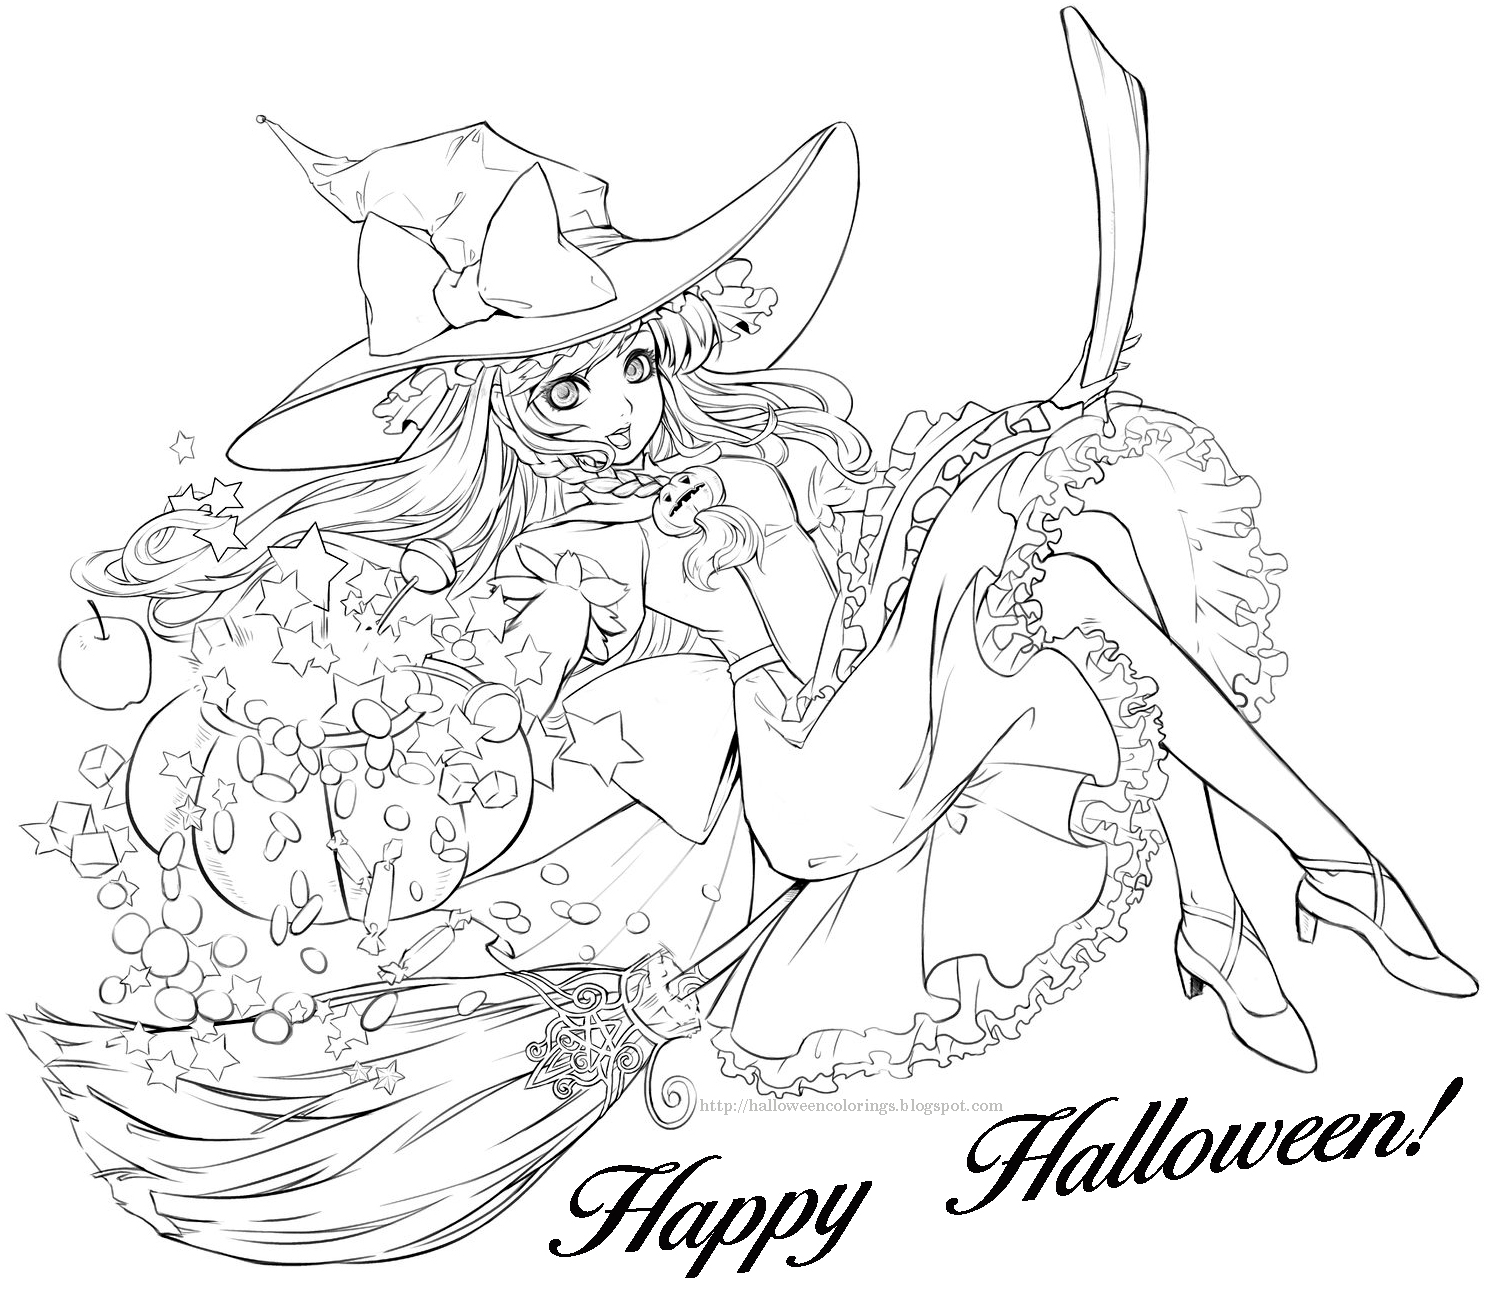 free printable coloring halloween pages | HALLOWEEN COLORINGS